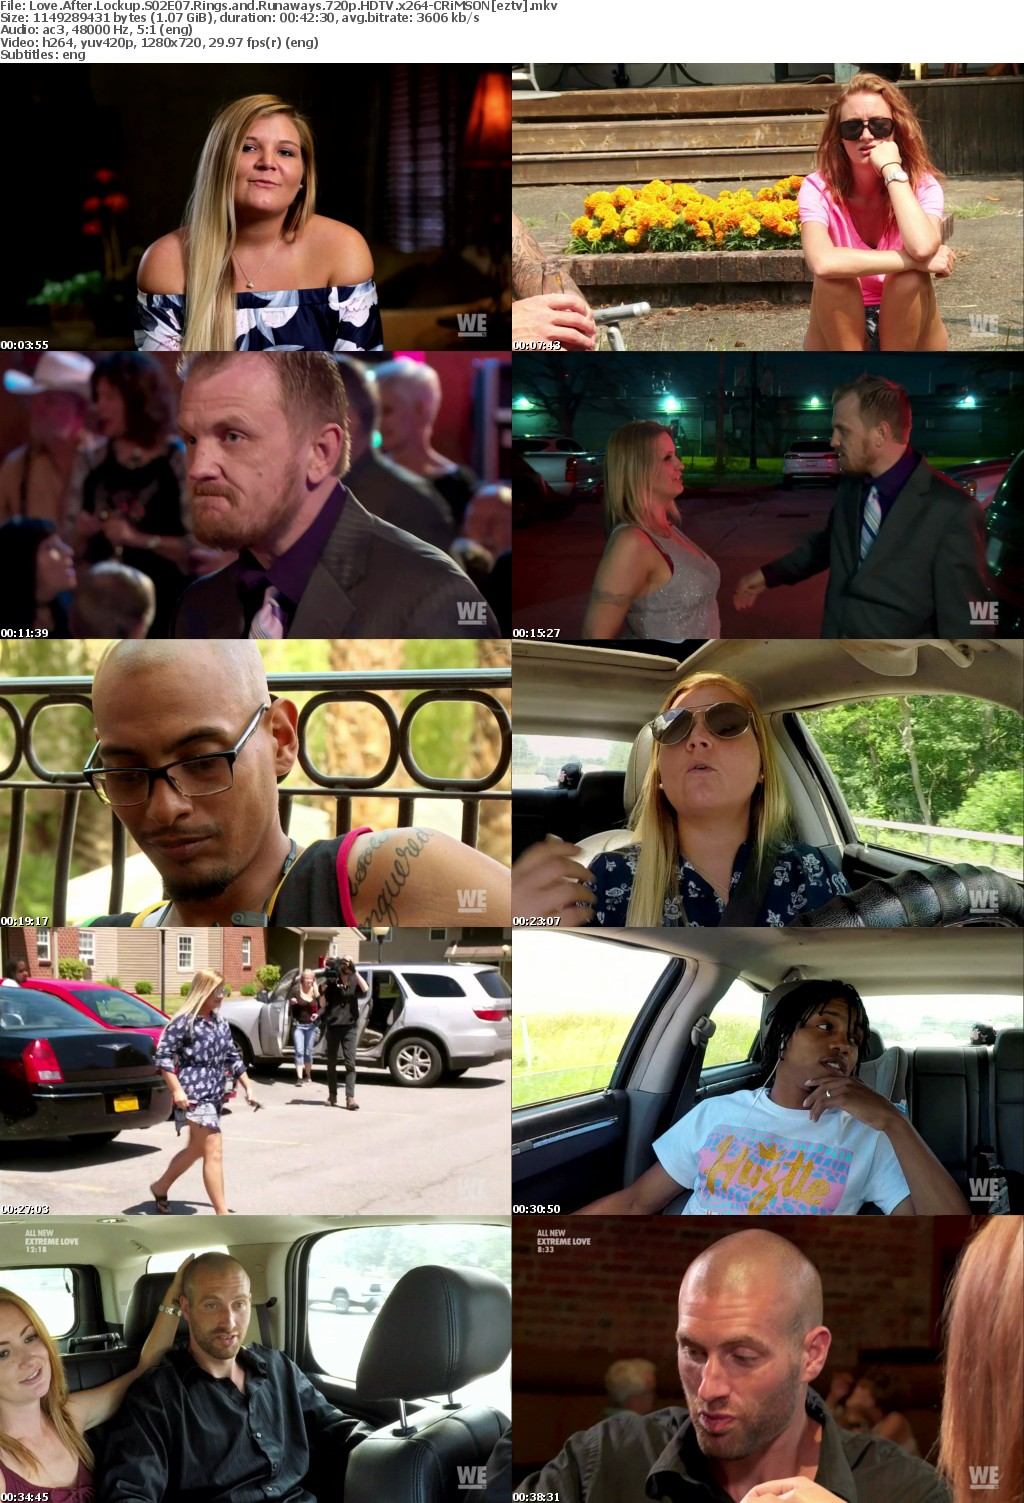 Love After Lockup S02E07 Rings and Runaways 720p HDTV x264-CRiMSON